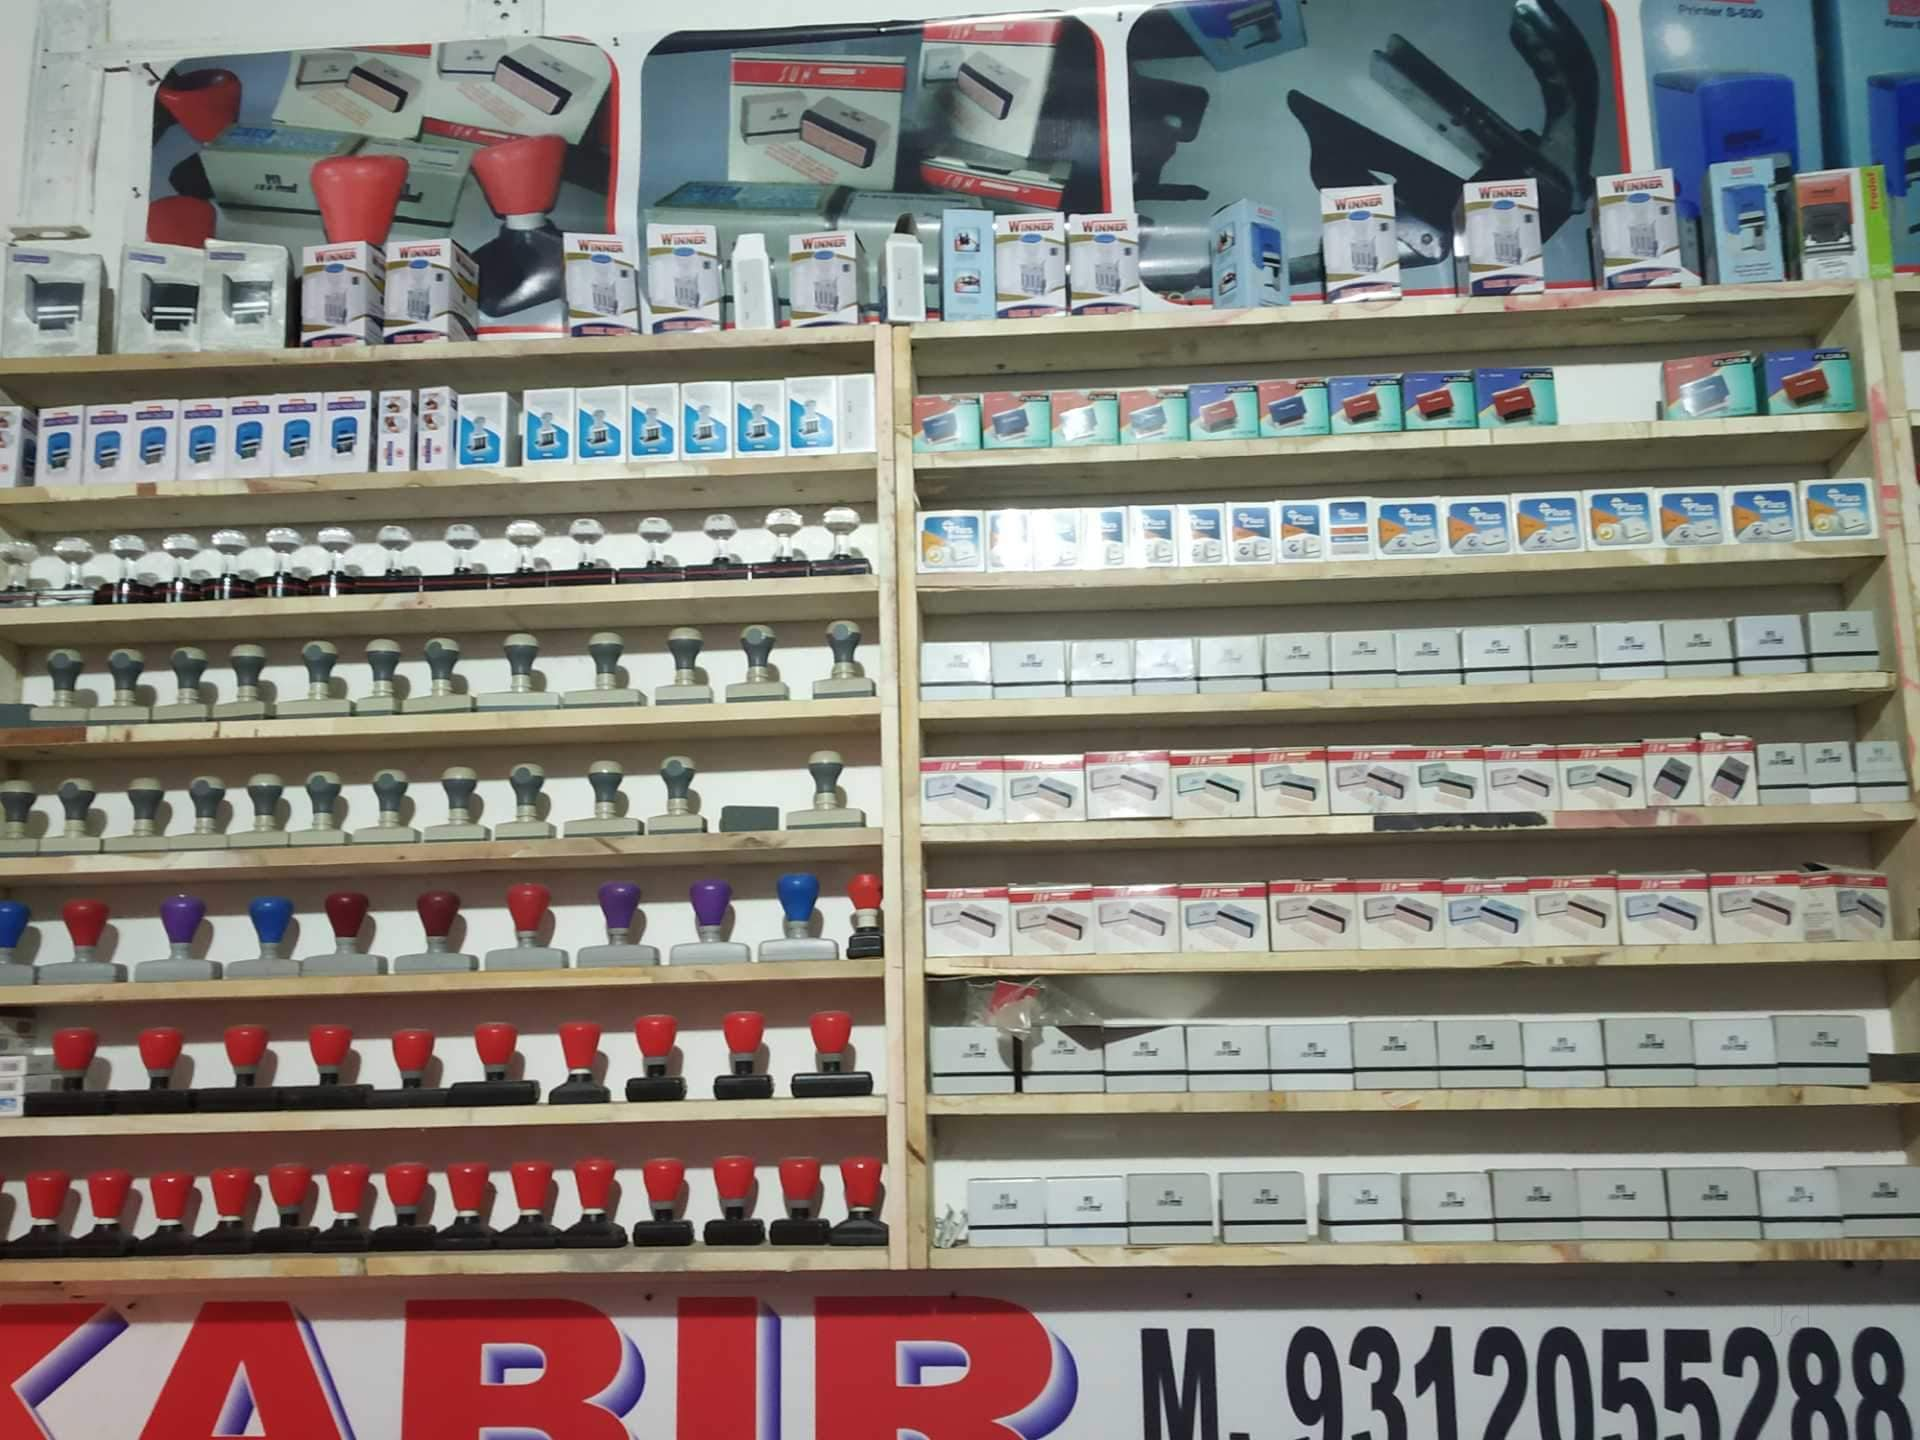 Top 100 Rubber Stamp Manufacturers in Noida Sector 63 - Best